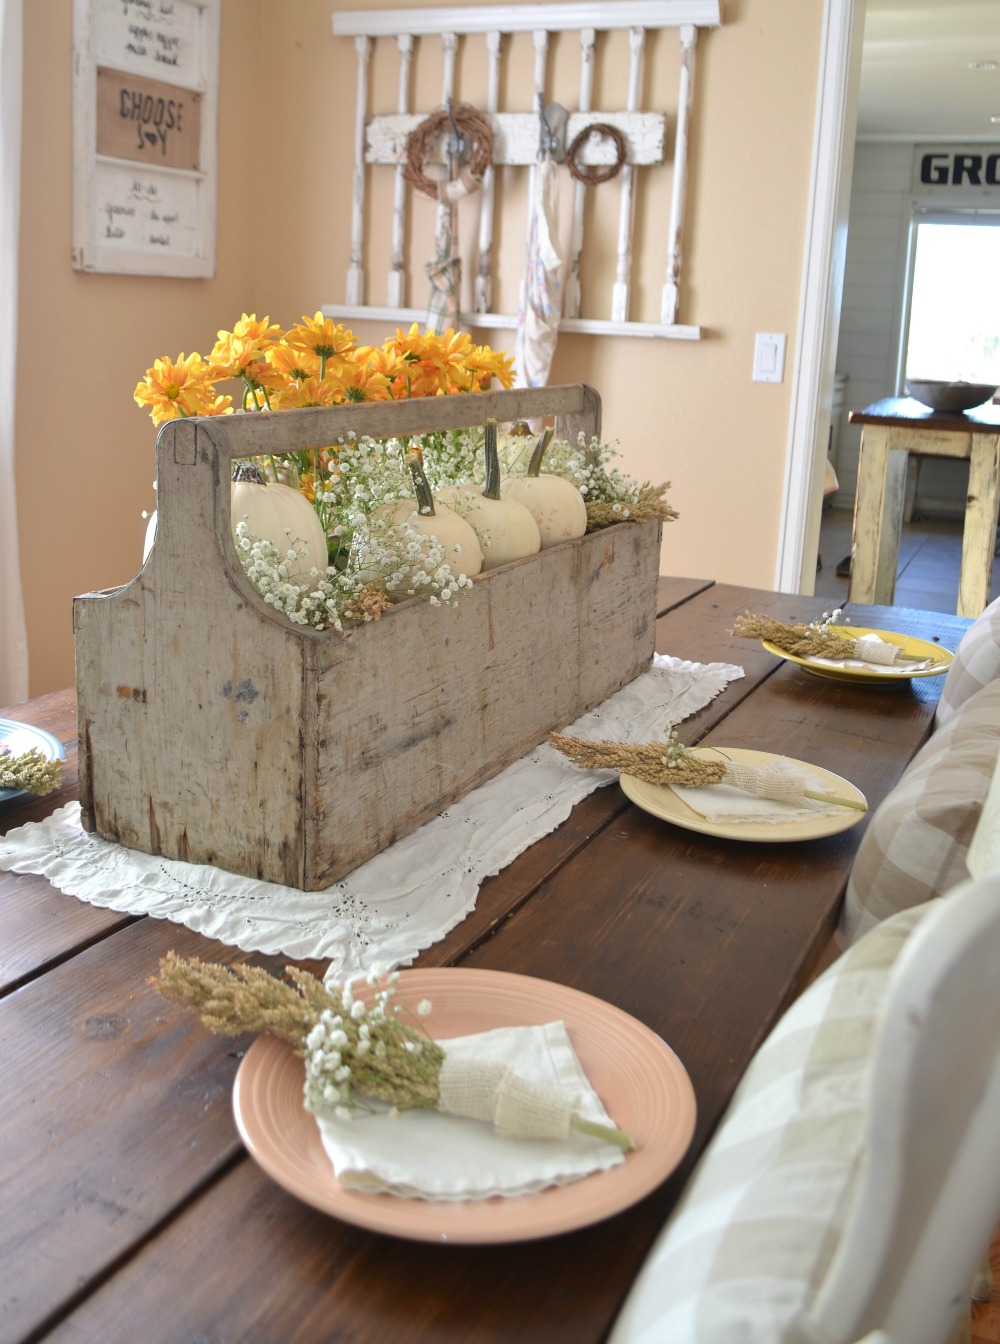 Thanksgiving table decor ideas - a large centerpiece filled with mini pumpkins and flowers!